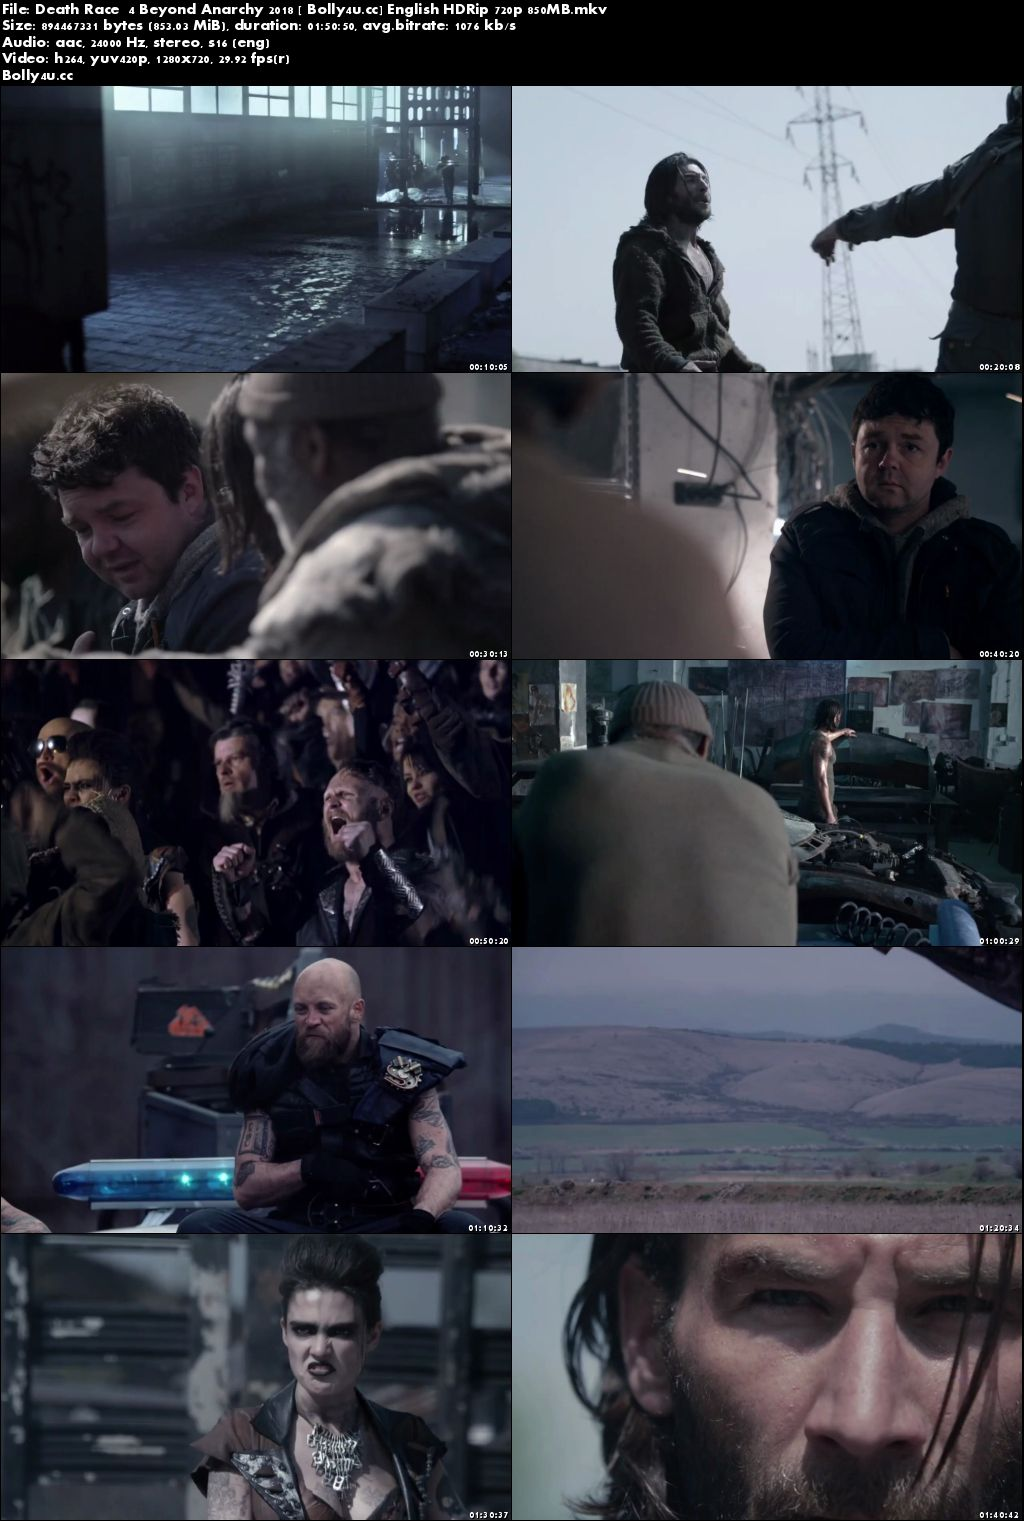 Death Race 4 Beyond Anarchy 2018 HDRip 350MB English 480p Download